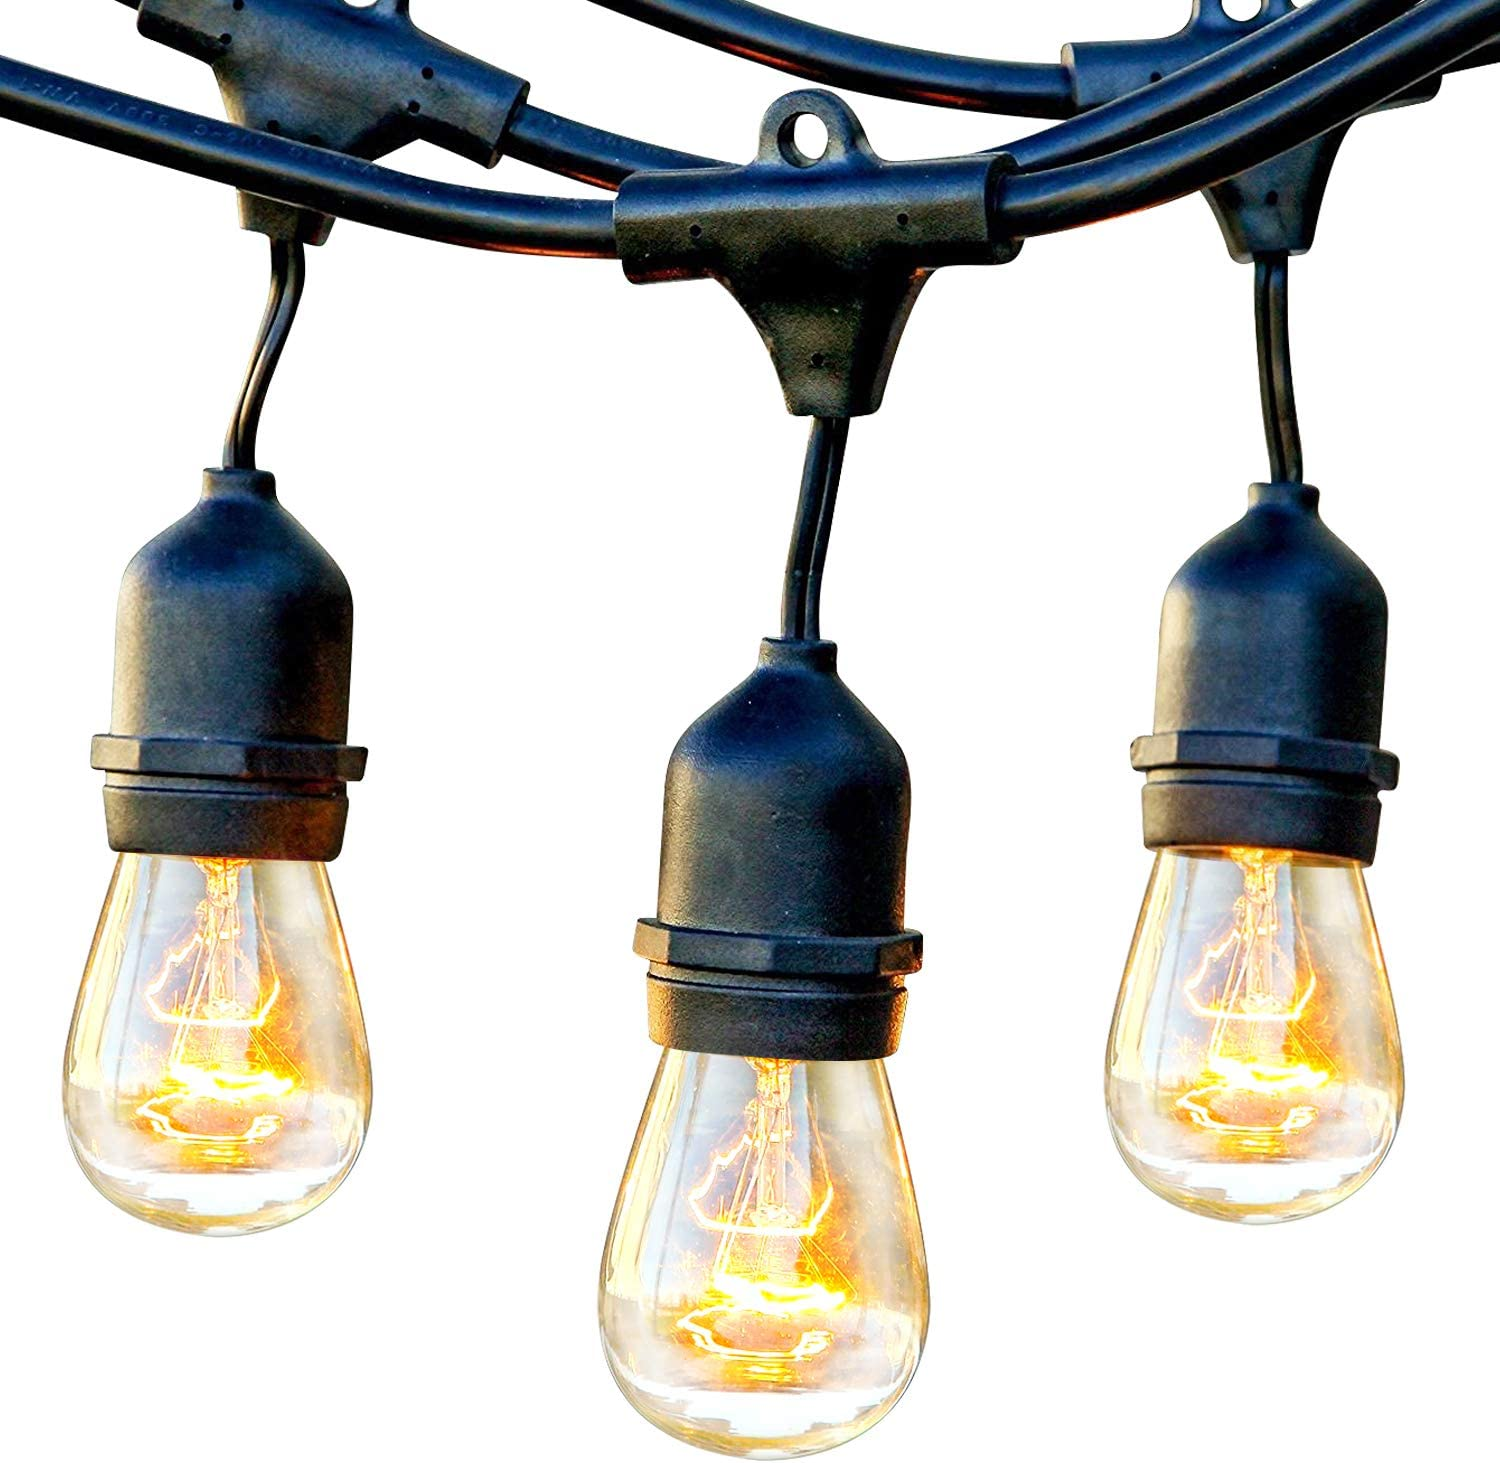 Amazon Com Brightech Ambience Pro Waterproof Outdoor String Lights Hanging Industrial 11w Edison Bulbs 48 Ft Vintage Bistro Lights Create Great Ambience In Your Backyard Gazebo Home Improvement